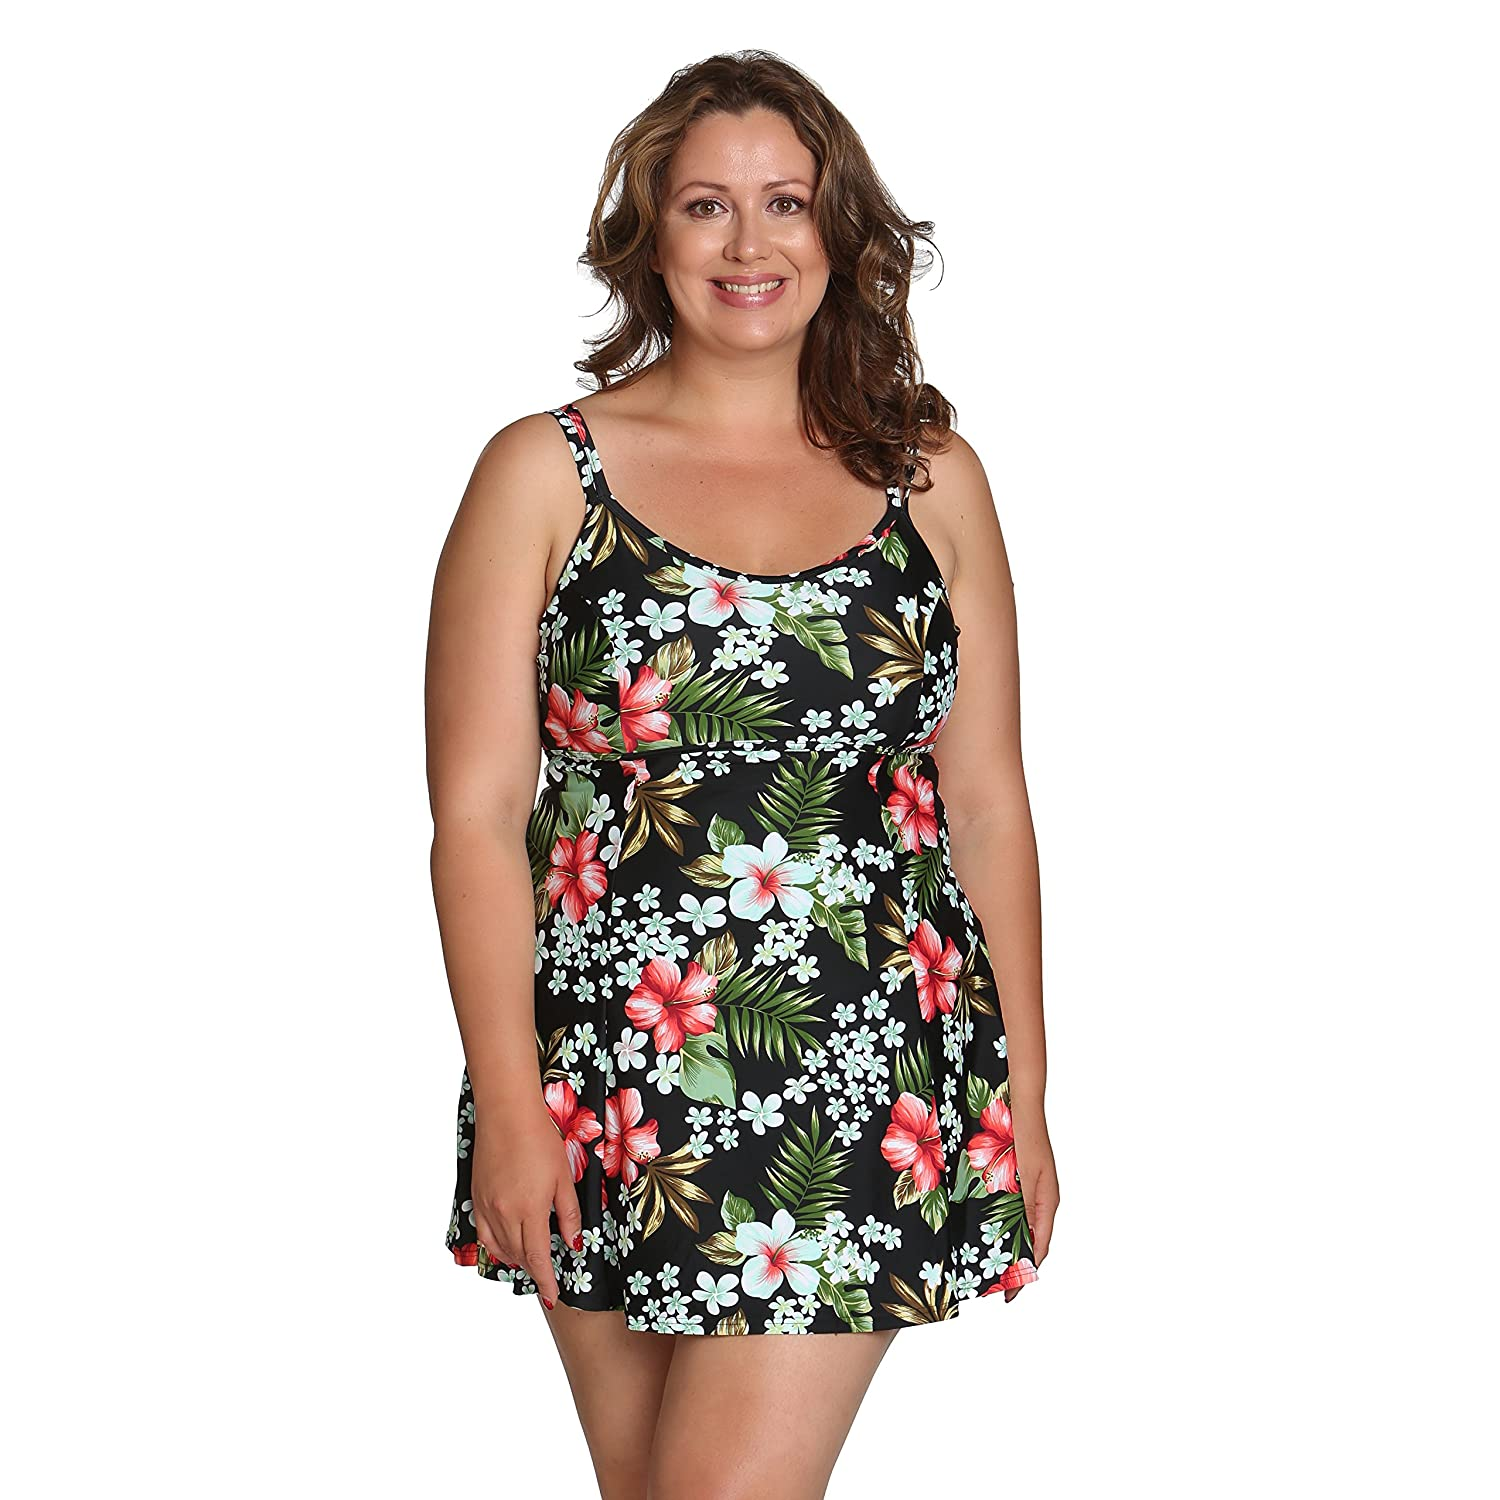 e1cb7ba18794e Island Pearls Island World Plus Size Women s Swimsuit Solid Floral Design  Baby Doll One Piece with Tummy Control Hawaiian Floral 22 at Amazon Women s  ...